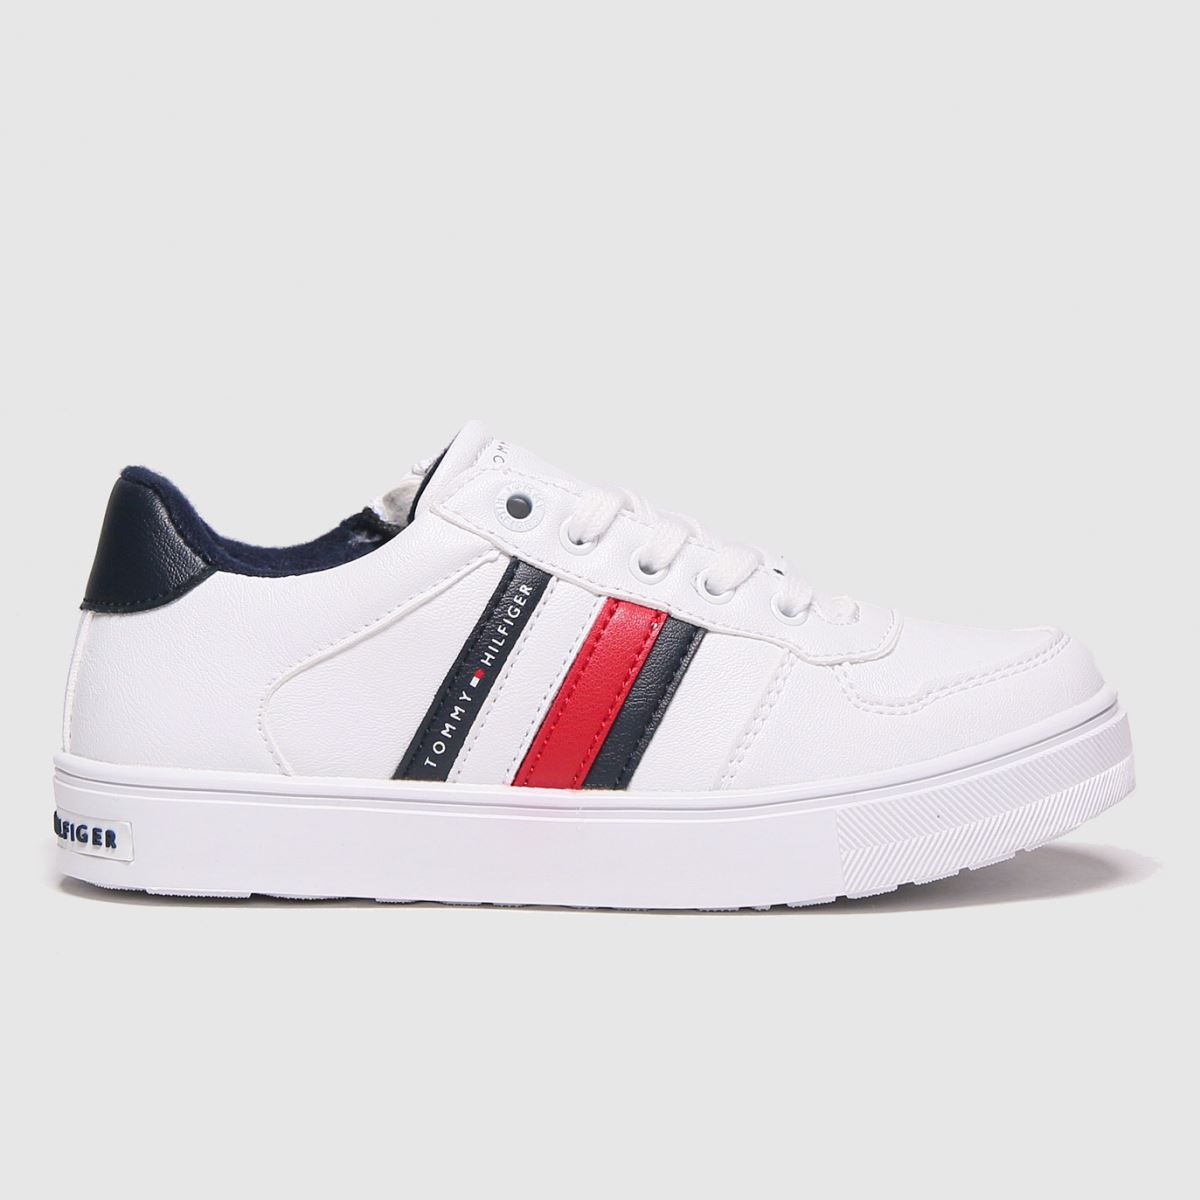 Tommy Hilfiger White & Navy Low Cut Lace-up Sneaker Trainers Jun